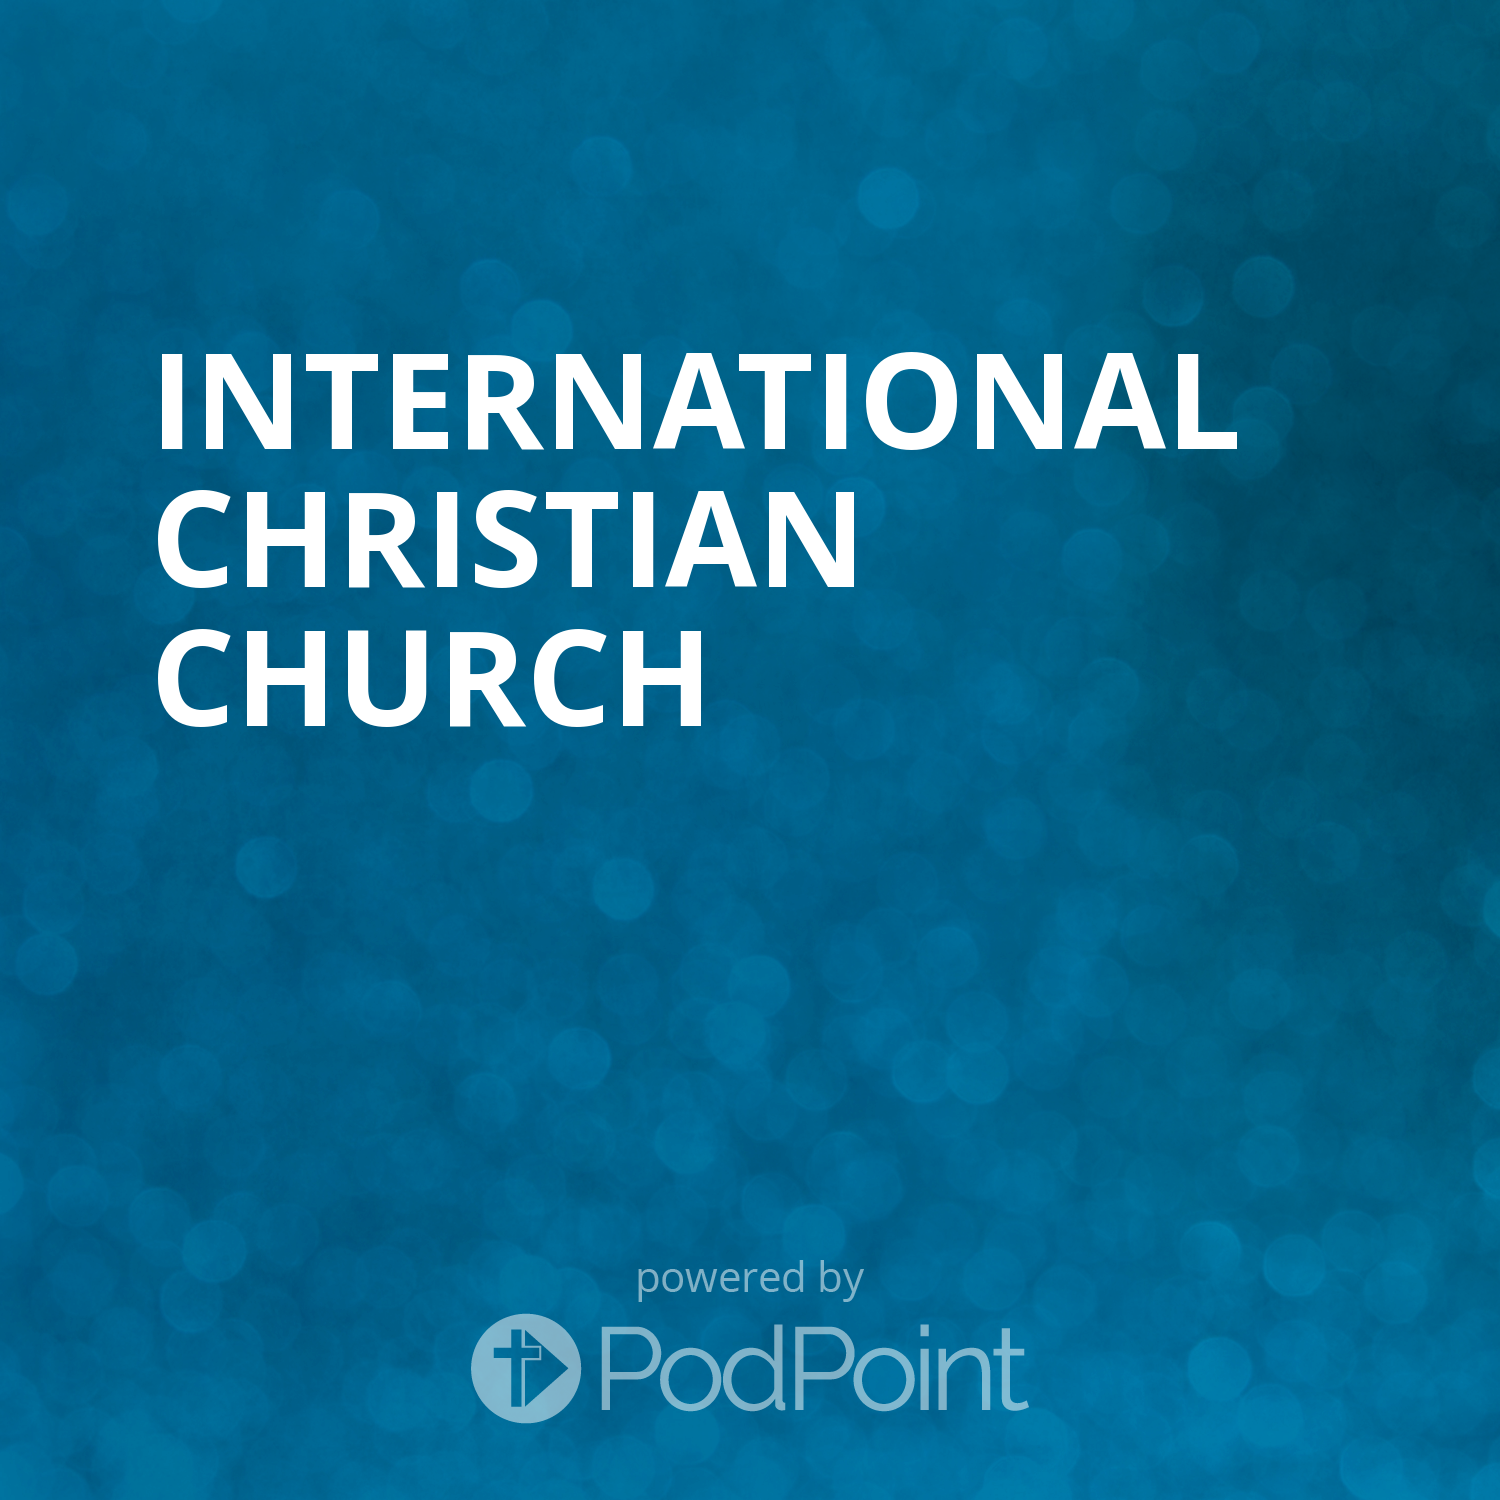 International Christian Church